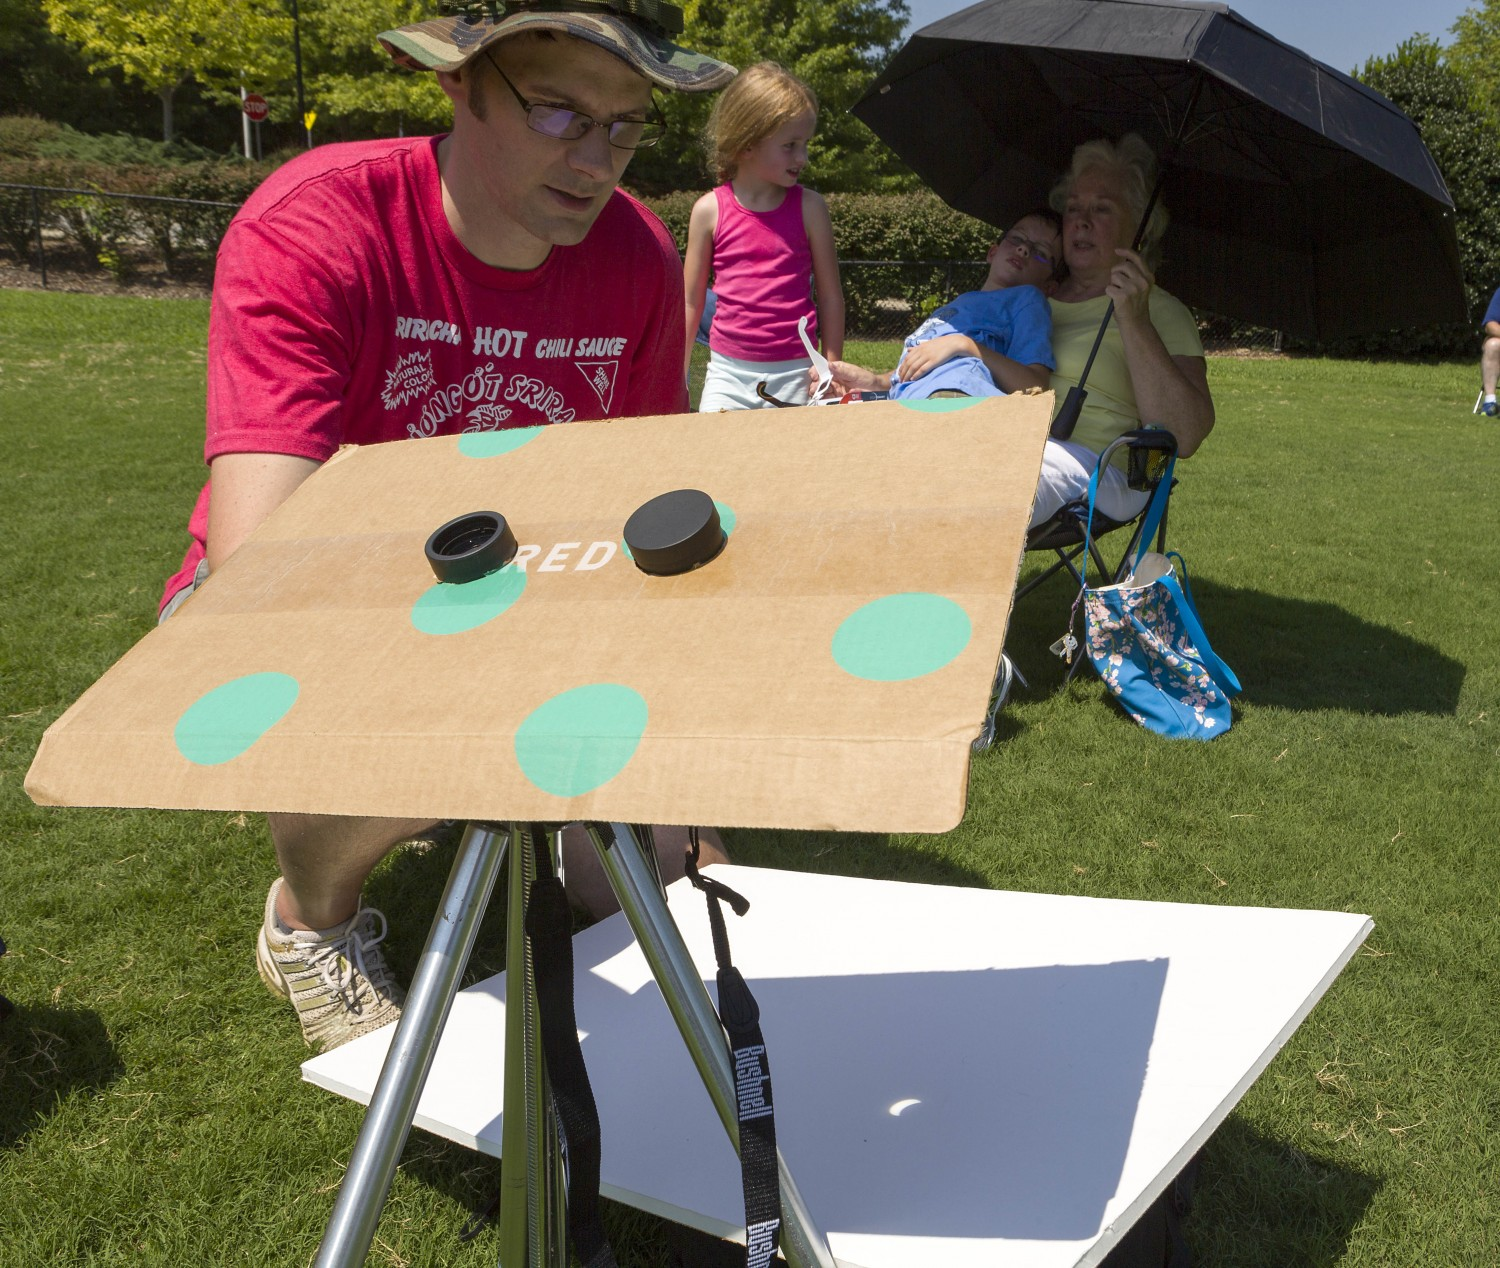 Using a pair of binoculars, T.J. Hill of Cary projects and magnifies an image of the solar eclipse on a piece of foam core. Hill tried out his pinhole camera at North Cary Park, where he and his family joined others for the historic event.